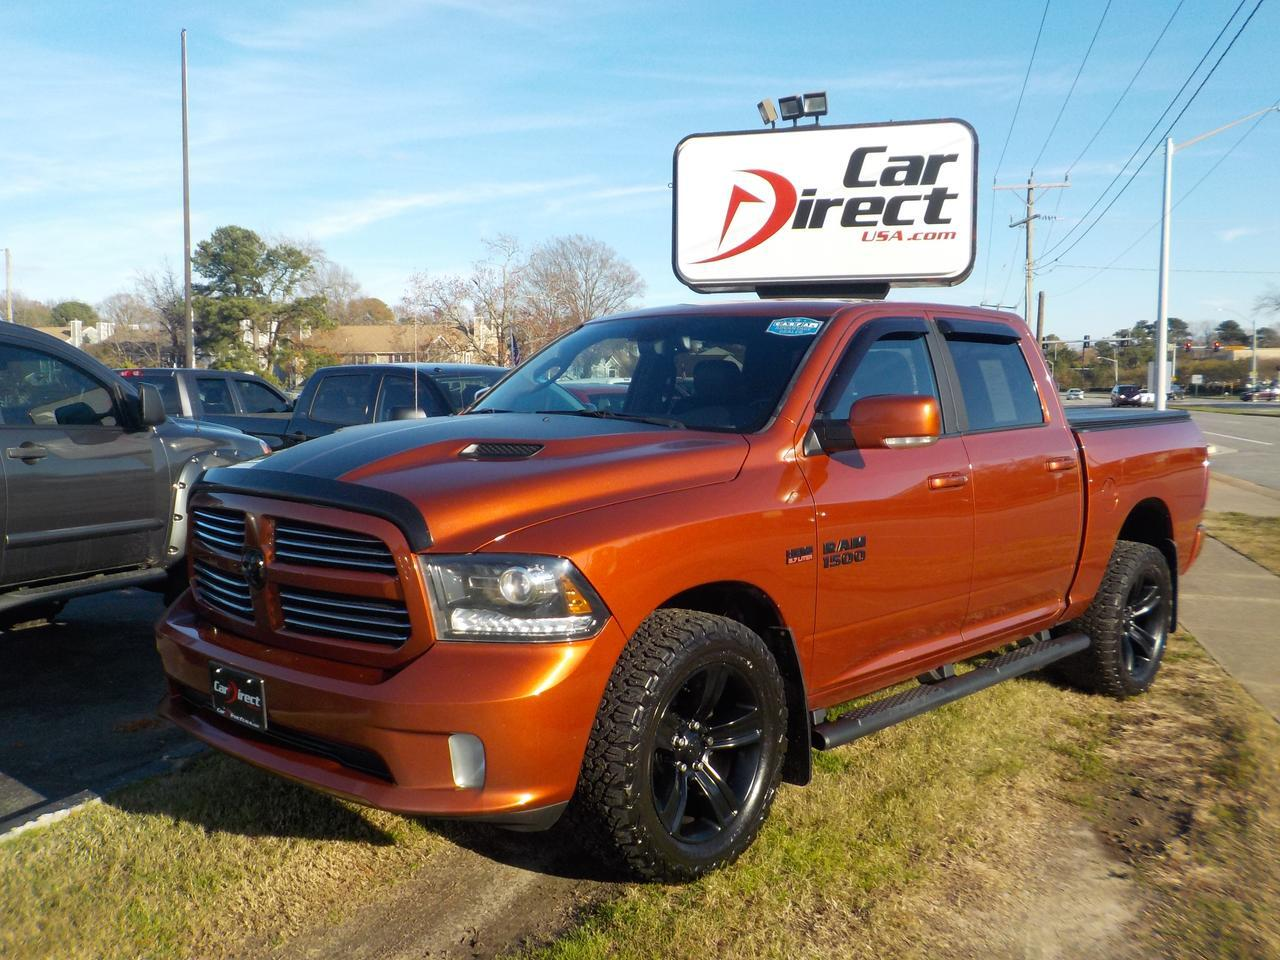 2017 RAM 1500 HEMI, CREW CAB SPORT 4X4, LEATHER, SOFT TONNEAU COVER, BACKUP CAMERA, HEATED SEATS, REMOTE START! Virginia Beach VA